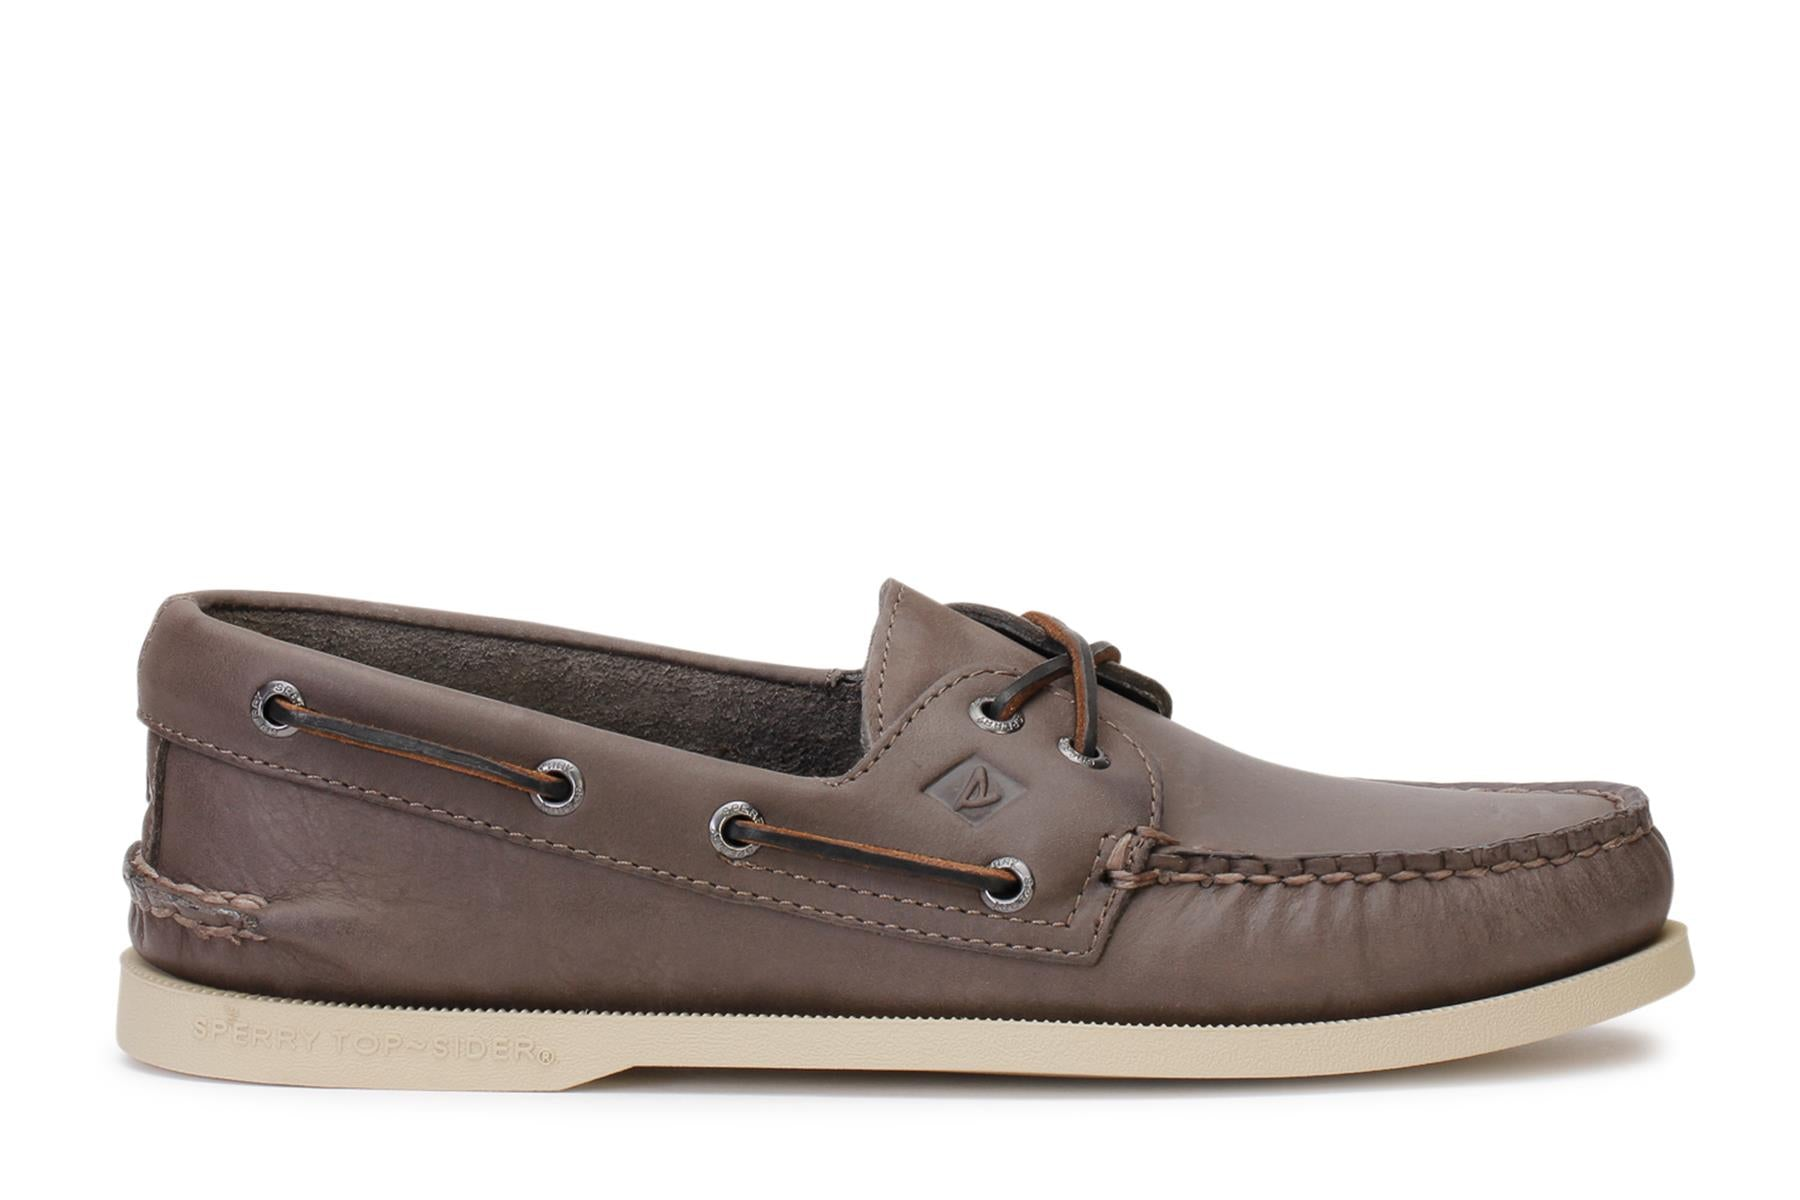 sperry-top-sider-mens-boat-shoes-a-o-2-eye-cross-lace-grey-sts16289-main